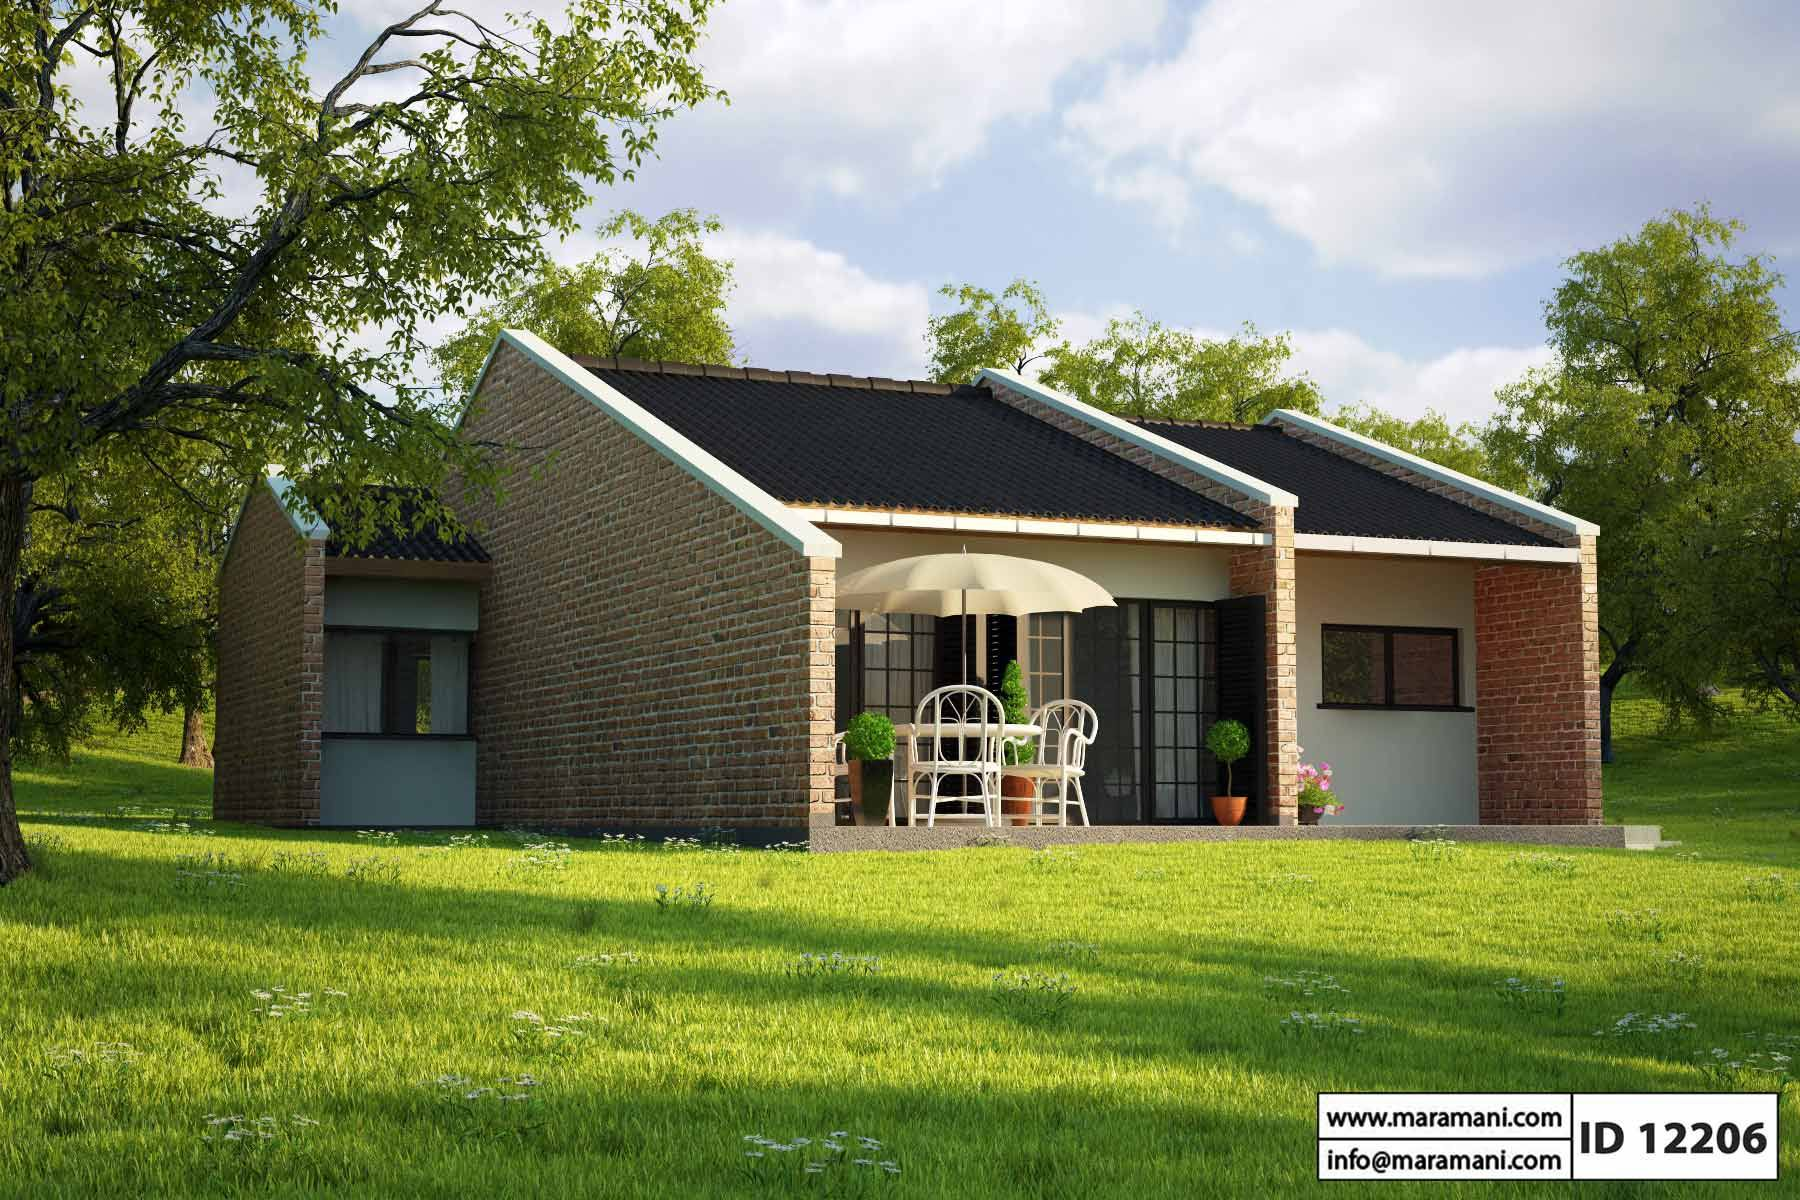 Small Brick House Design Id 12206 House Plans By Maramani